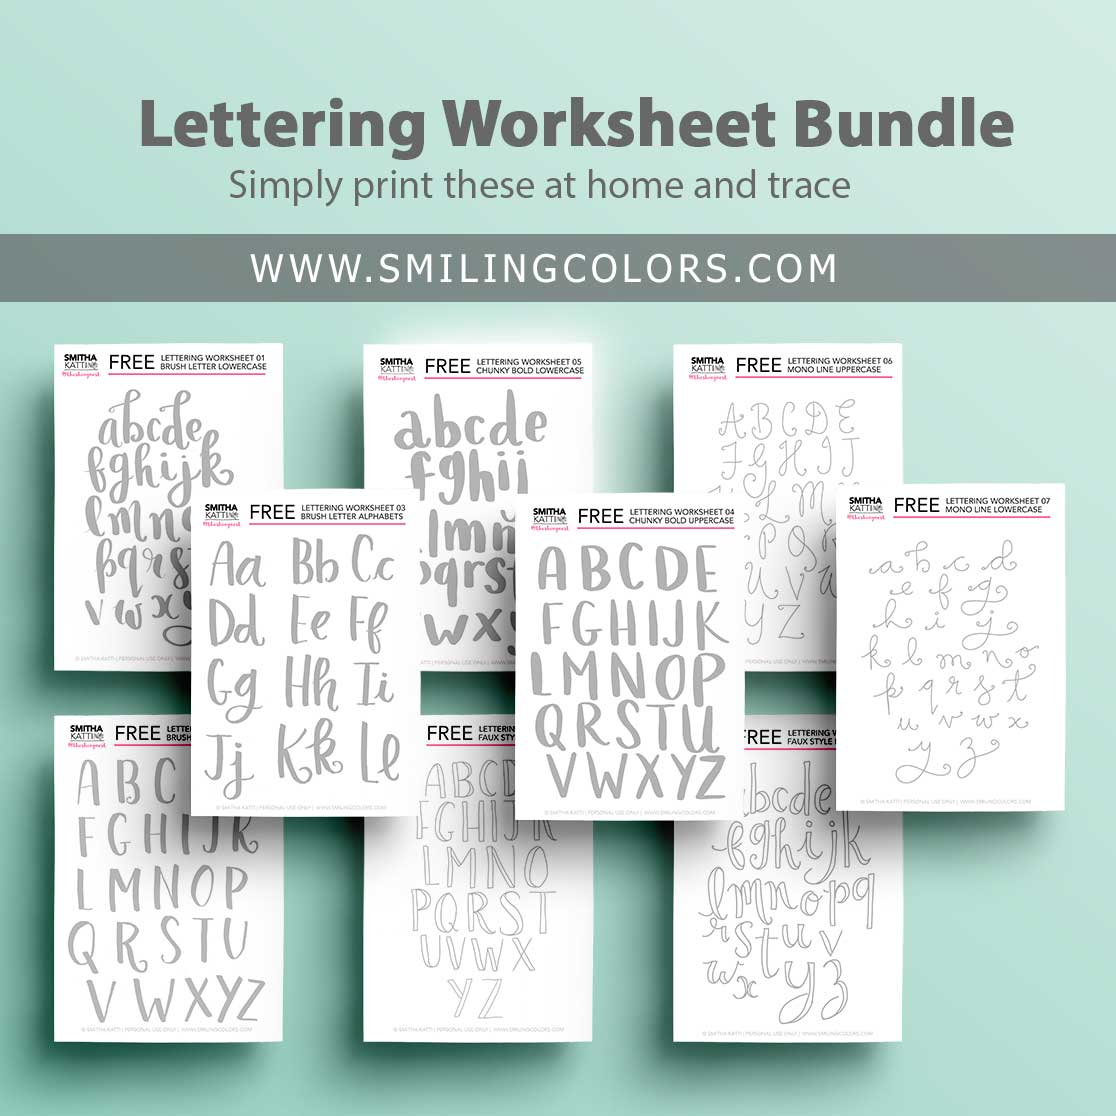 Lettering Worksheets 9 Free Printable Practice Sheets To